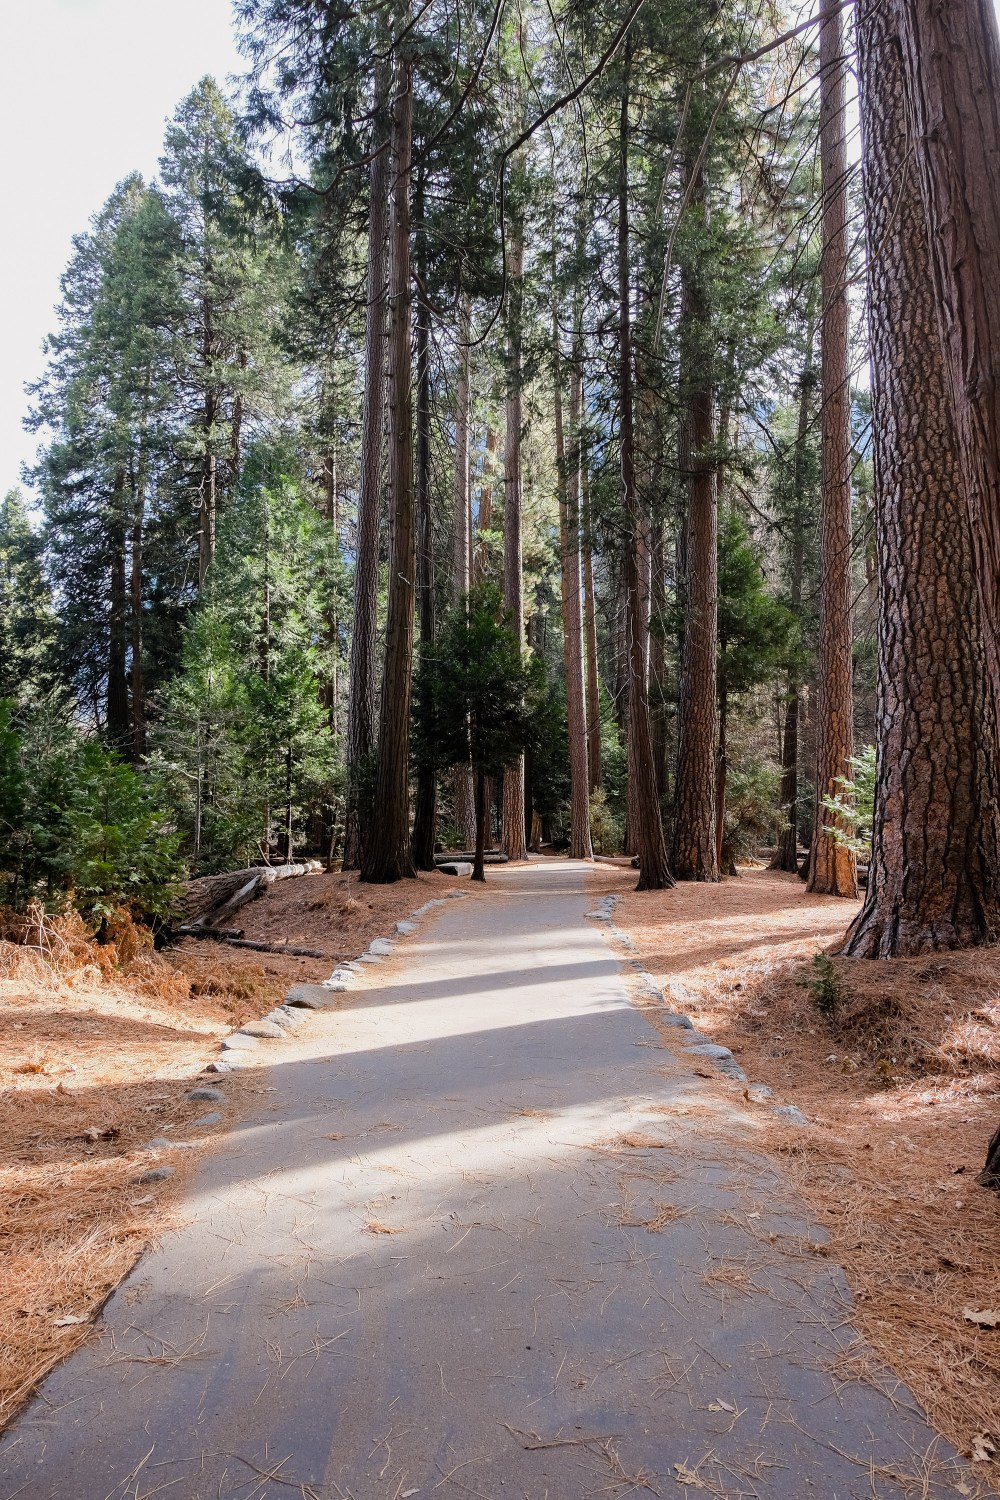 Footpath // Things To Do in Yosemite in Winter